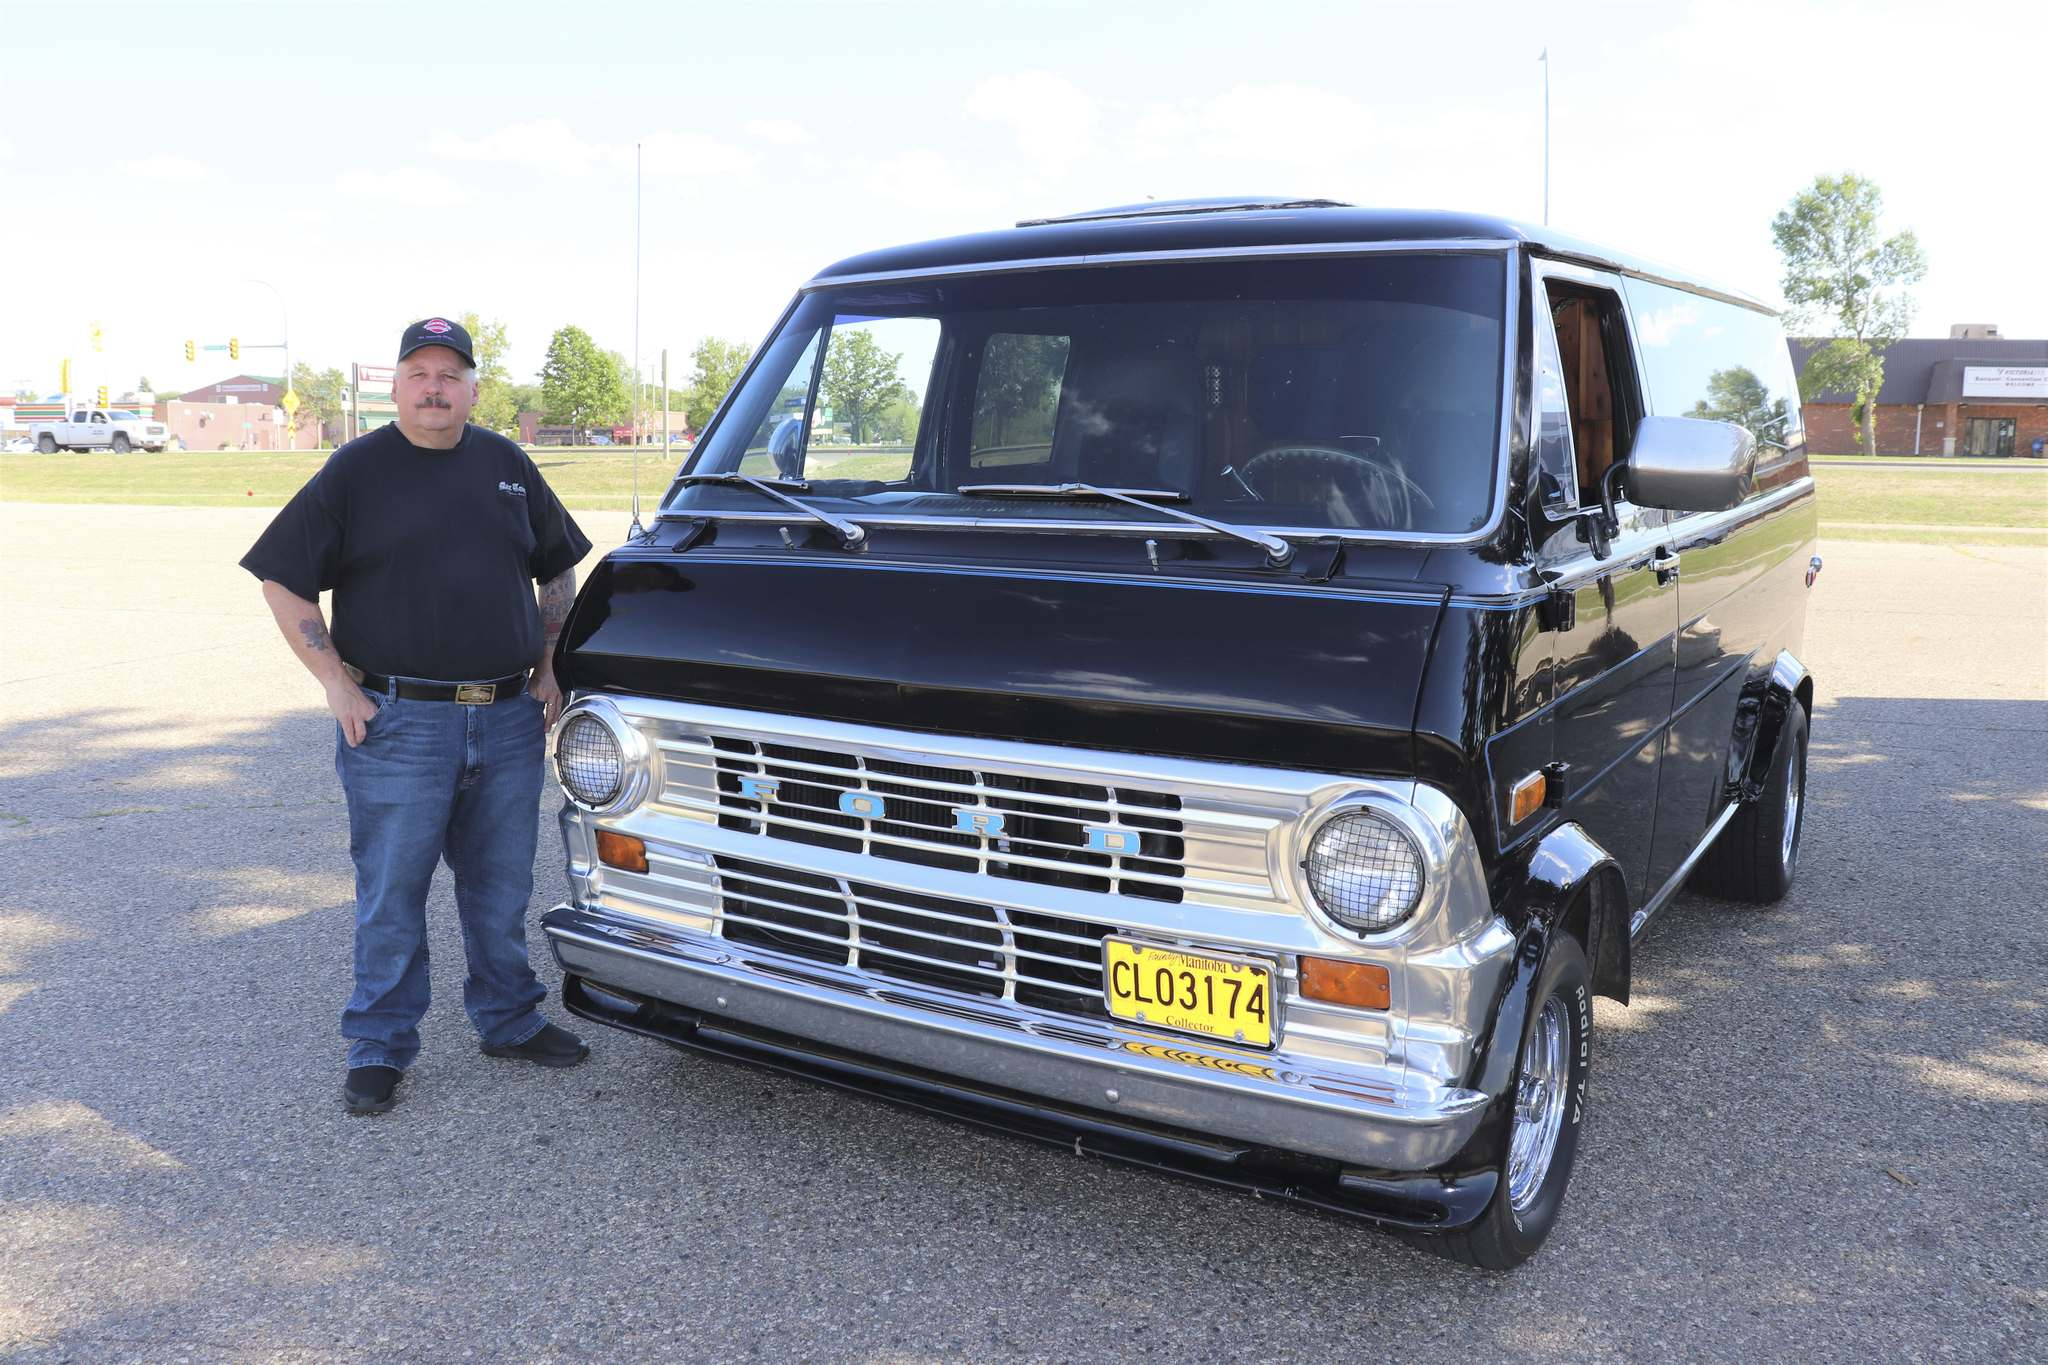 """Kyle Darbyson/The Brandon Sun</p> <p>Mike Yates poses for the photo next to his 1971 Ford Econoline van in the Sobeys West parking lot in Brandon Tuesday night.  Yates told The Sun he wanted to use this vintage vehicle to give Westman residents a glimpse into the van craze of the '60s and' 70s.</p> </p> <p>""""/><figcaption> <p>Kyle Darbyson / Brandon's Sun</p> <p>Mike Yates poses for the photo next to his 1971 Ford Econoline van in the parking lot of Sobeys West in Brandon on Tuesday night.  Yates told The Sun he wanted to use this vintage vehicle to give Westman residents a glimpse into the van craze of the 1960s and '70s.</p> </figcaption></figure> <p>However, the 57-year-old said the real star of the show was the Econoline's comfortable interior, with its buttoned leather doors, crushed velor bed, ambient lighting and mini cooler.</p> <p>""""It's like your own little house on wheels,"""" he said.</p> <p>While opportunities to show off the Econoline have been scarce during the pandemic, Yates has revealed that he has been able to participate in a few recent cruise events now that the COVID-19 vaccination campaign is gaining momentum.</p> <p>Throughout these gatherings, including last Sunday's local Father's Day cruise to Killarney, the Brandon resident noticed that the 1970s Econoline is more popular than ever with his fellow Westman vans, as these vans are not a daily sight in the area.</p> <figure class="""